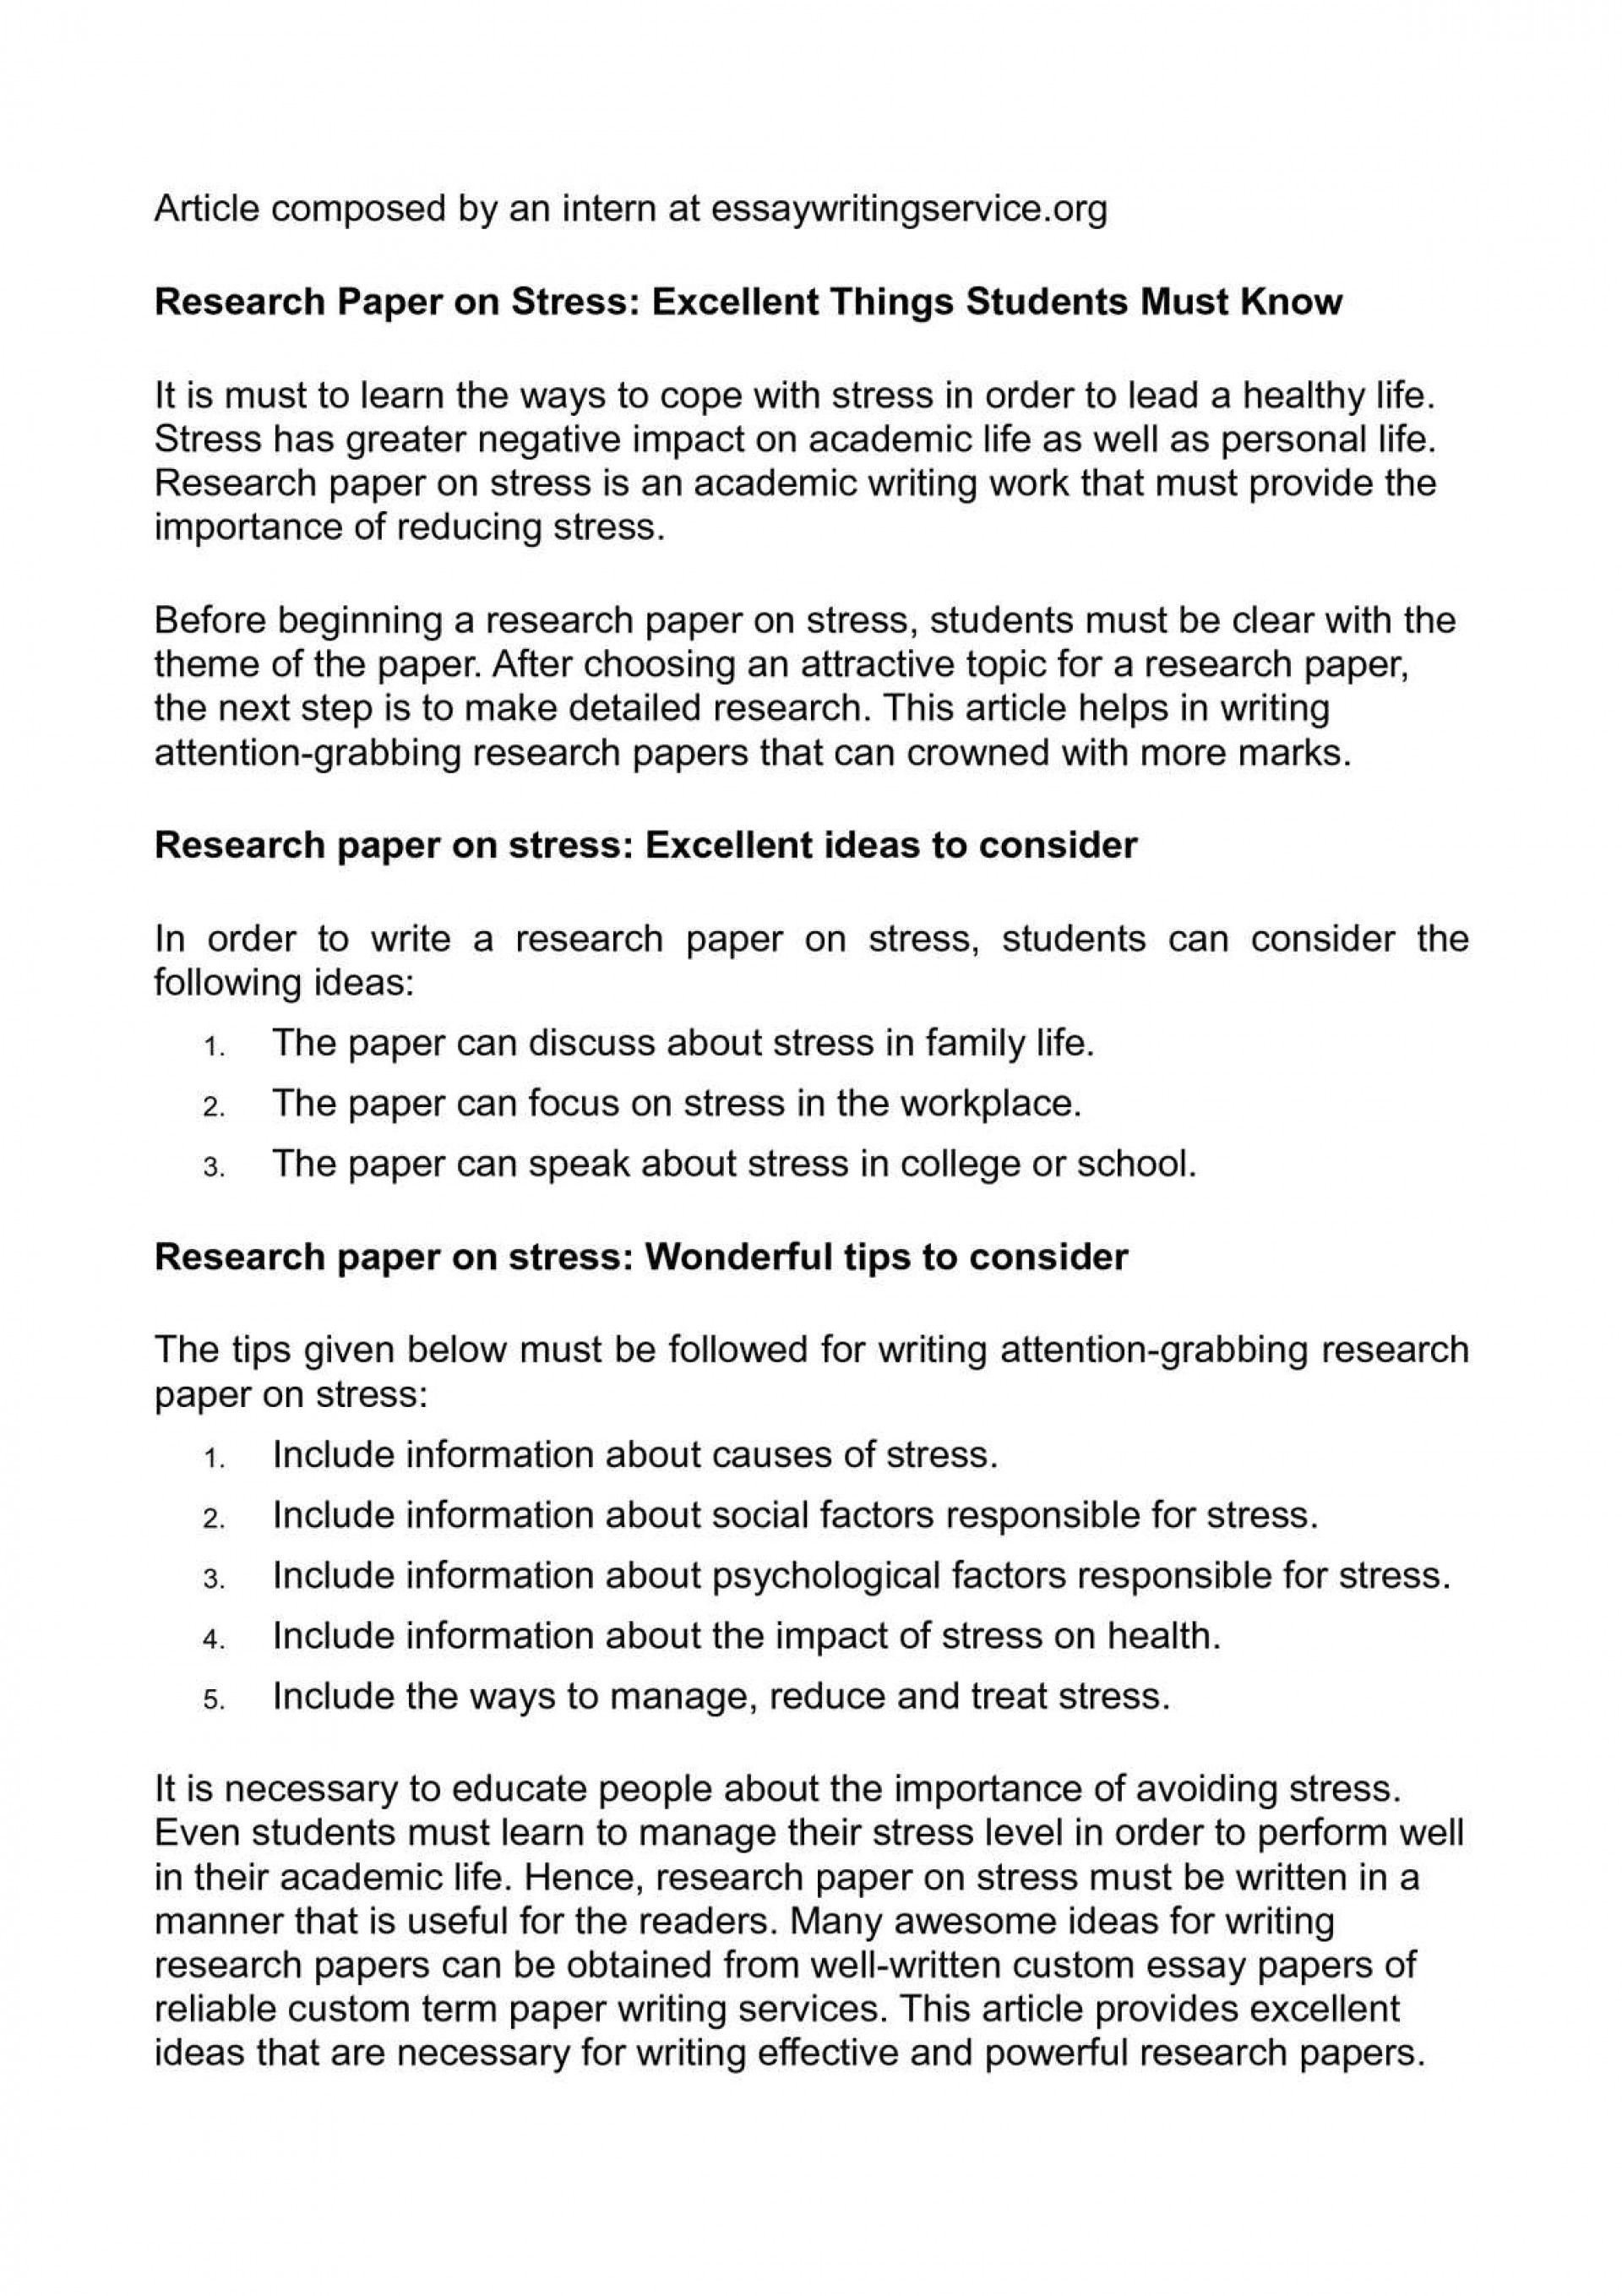 016 Health Topics To Write Research Paper On Breathtaking A 1920